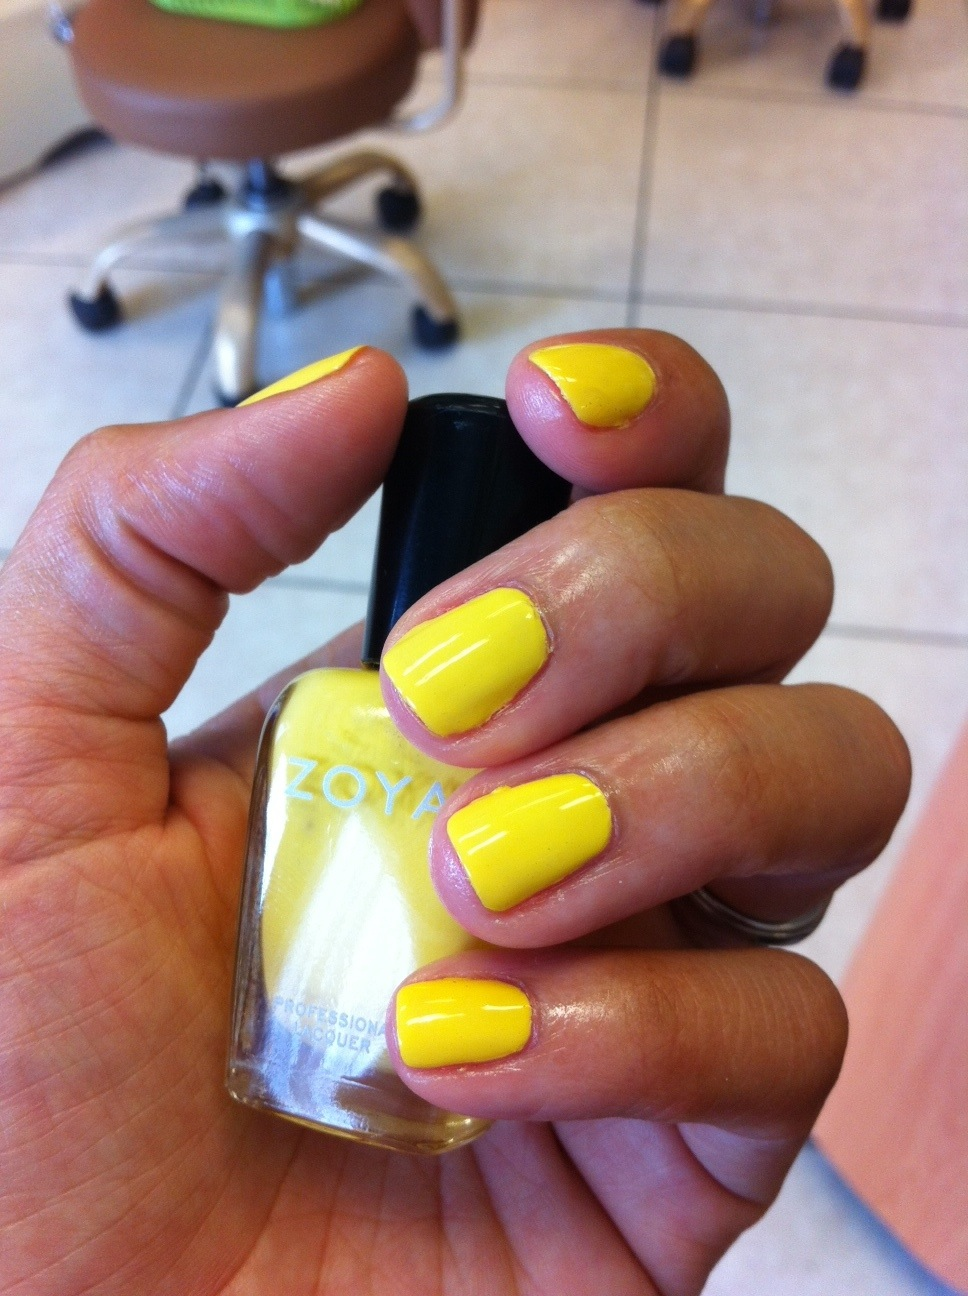 The color is Pippa by Zoya. I am still searching for a sunnier yellow